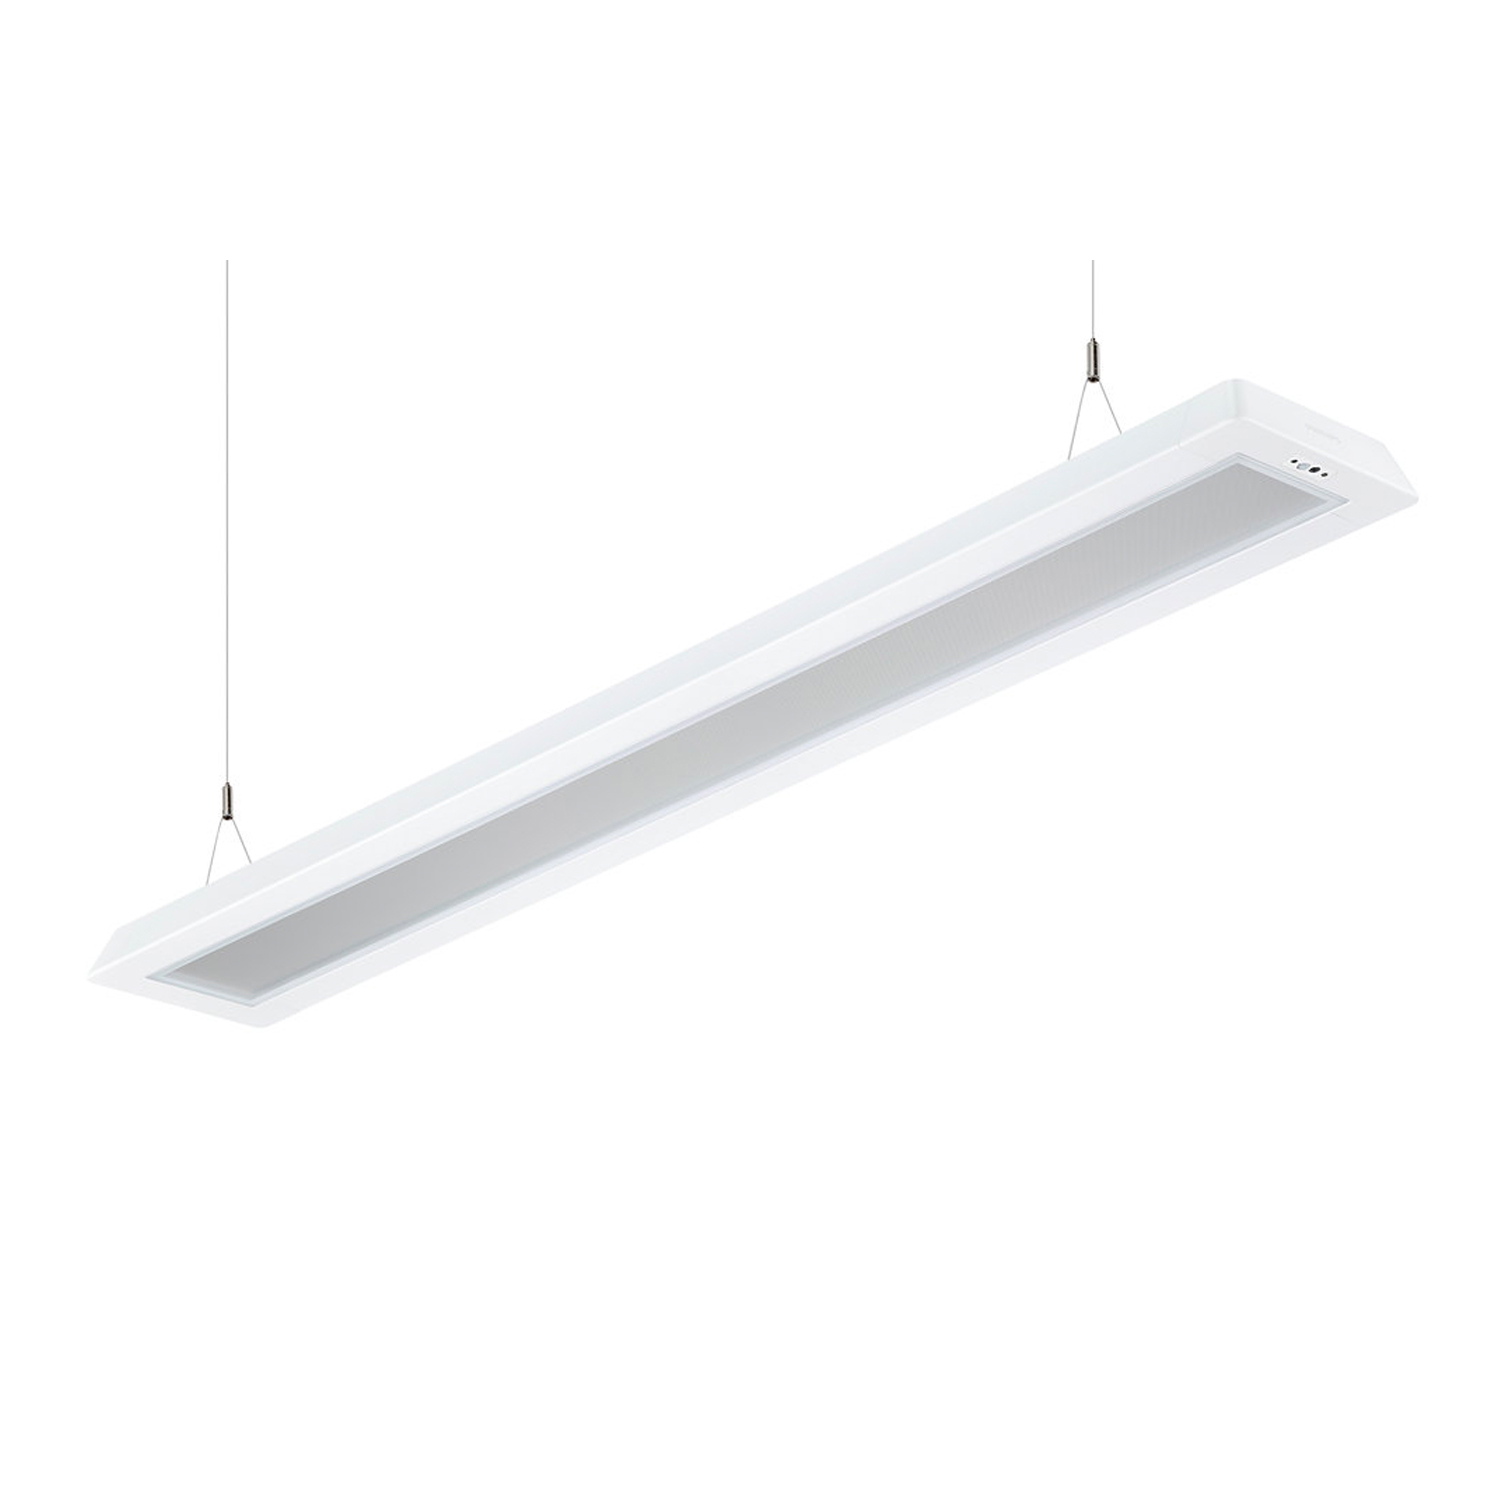 Philips FlexBlend LED Panel SP340P 39.5W 940 4000lm - Cool White